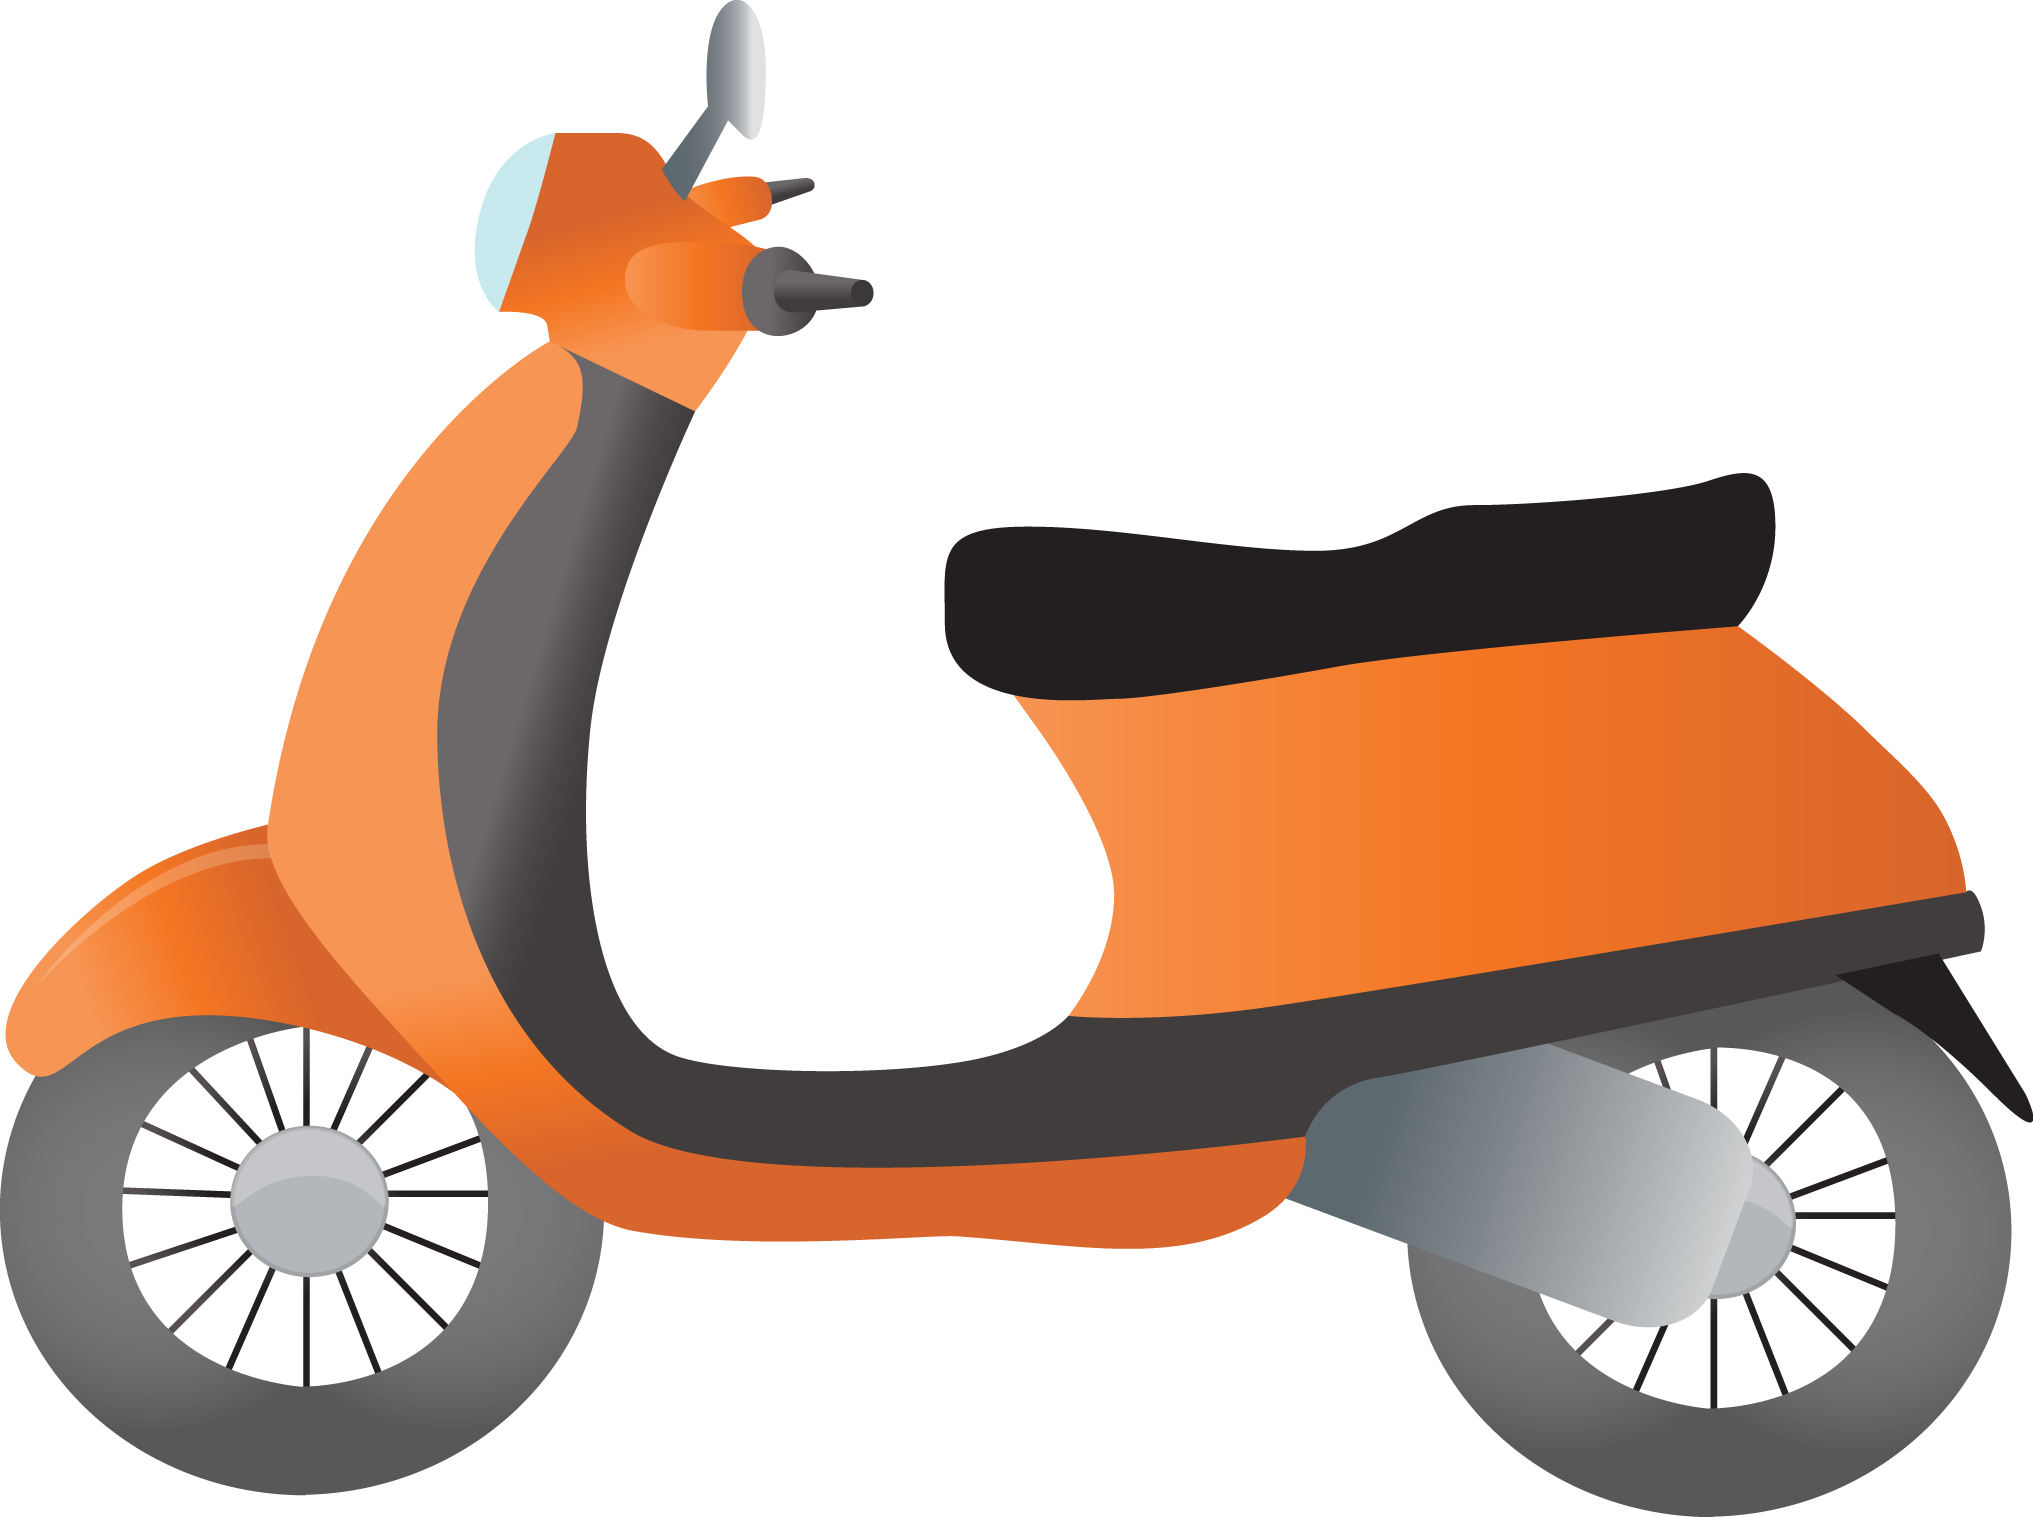 motorcycle cartoon png the best motorcycle 2018 harley davidson logos clip art harley davidson logos to print